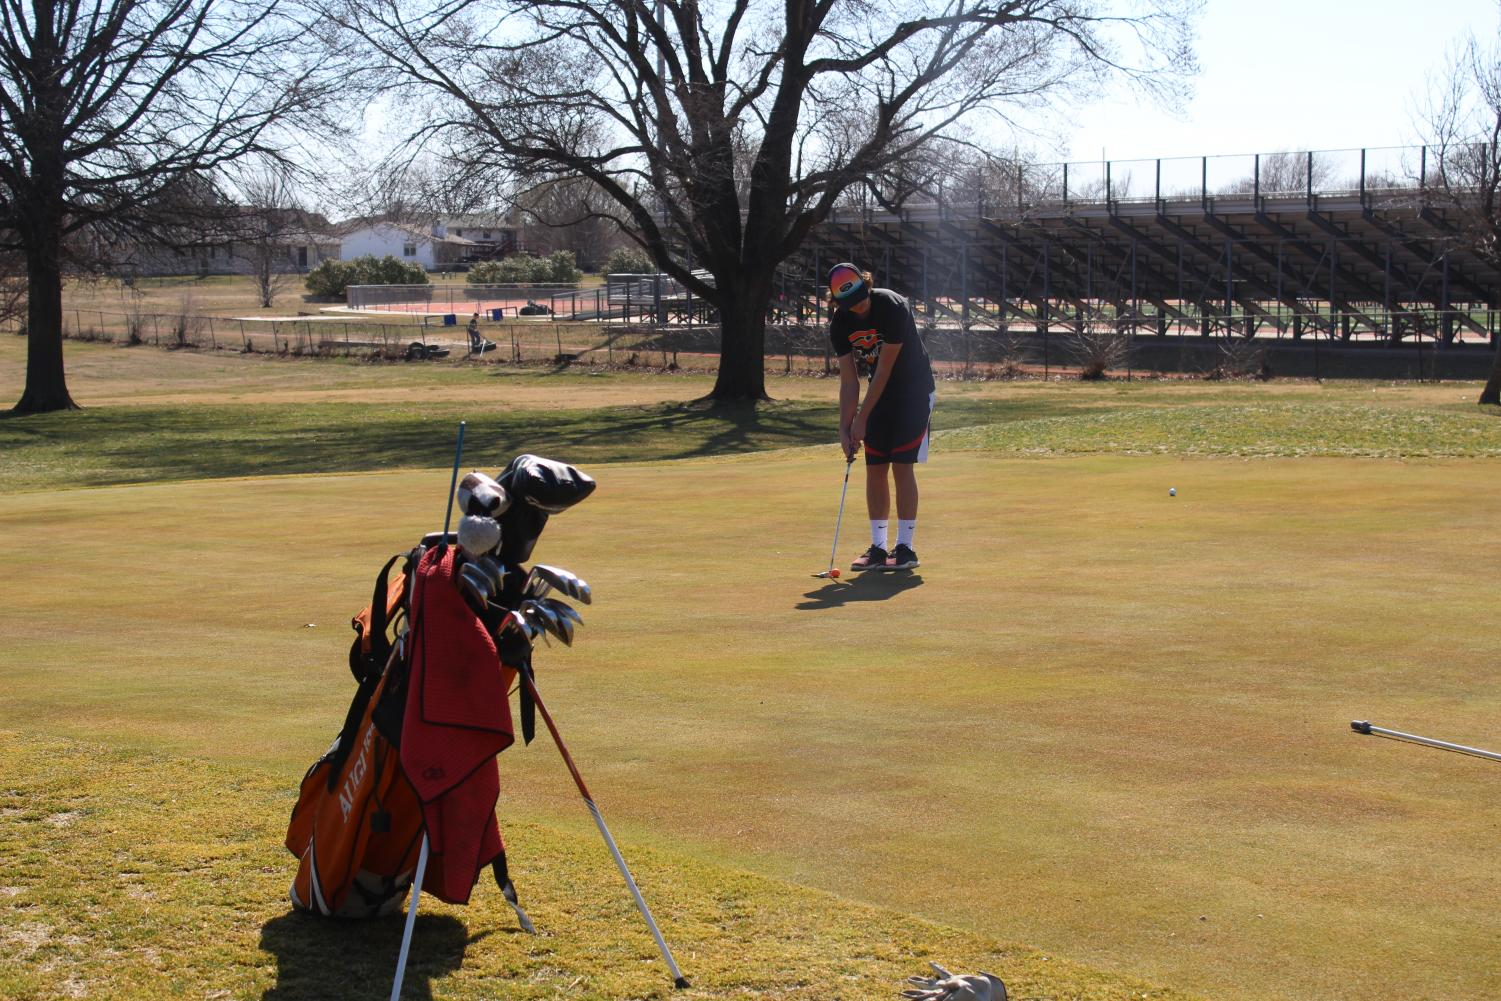 Kyle Scott (11) lines up his shot while practicing at the Augusta Country Club. This is where the JV Invitational was held.